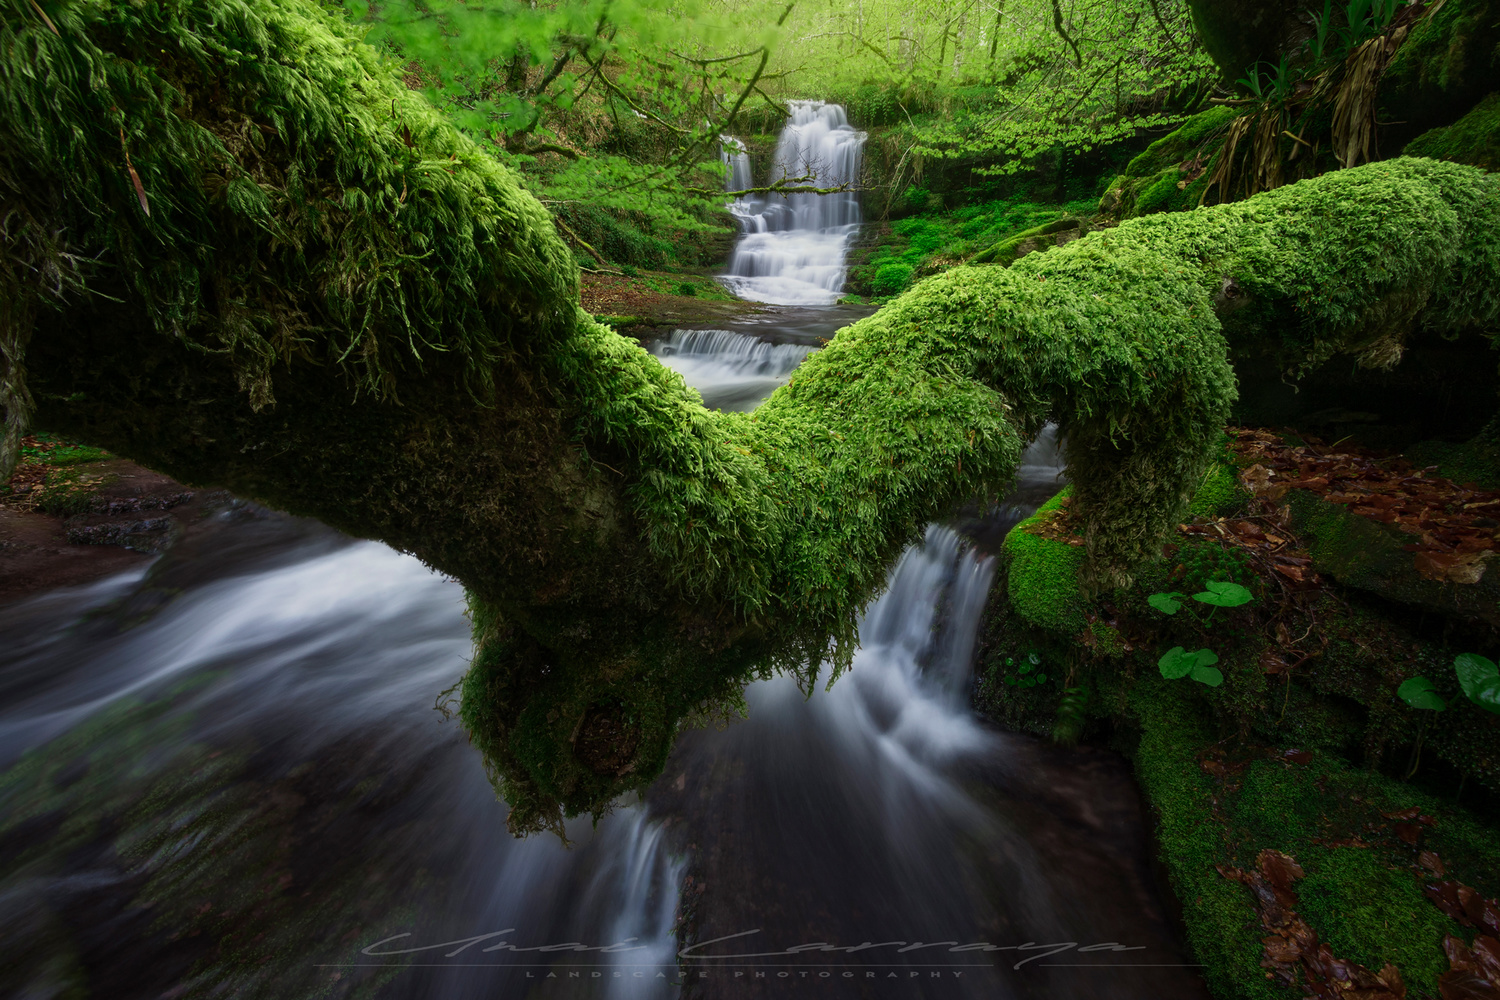 Covered in moss by Unai Larraya